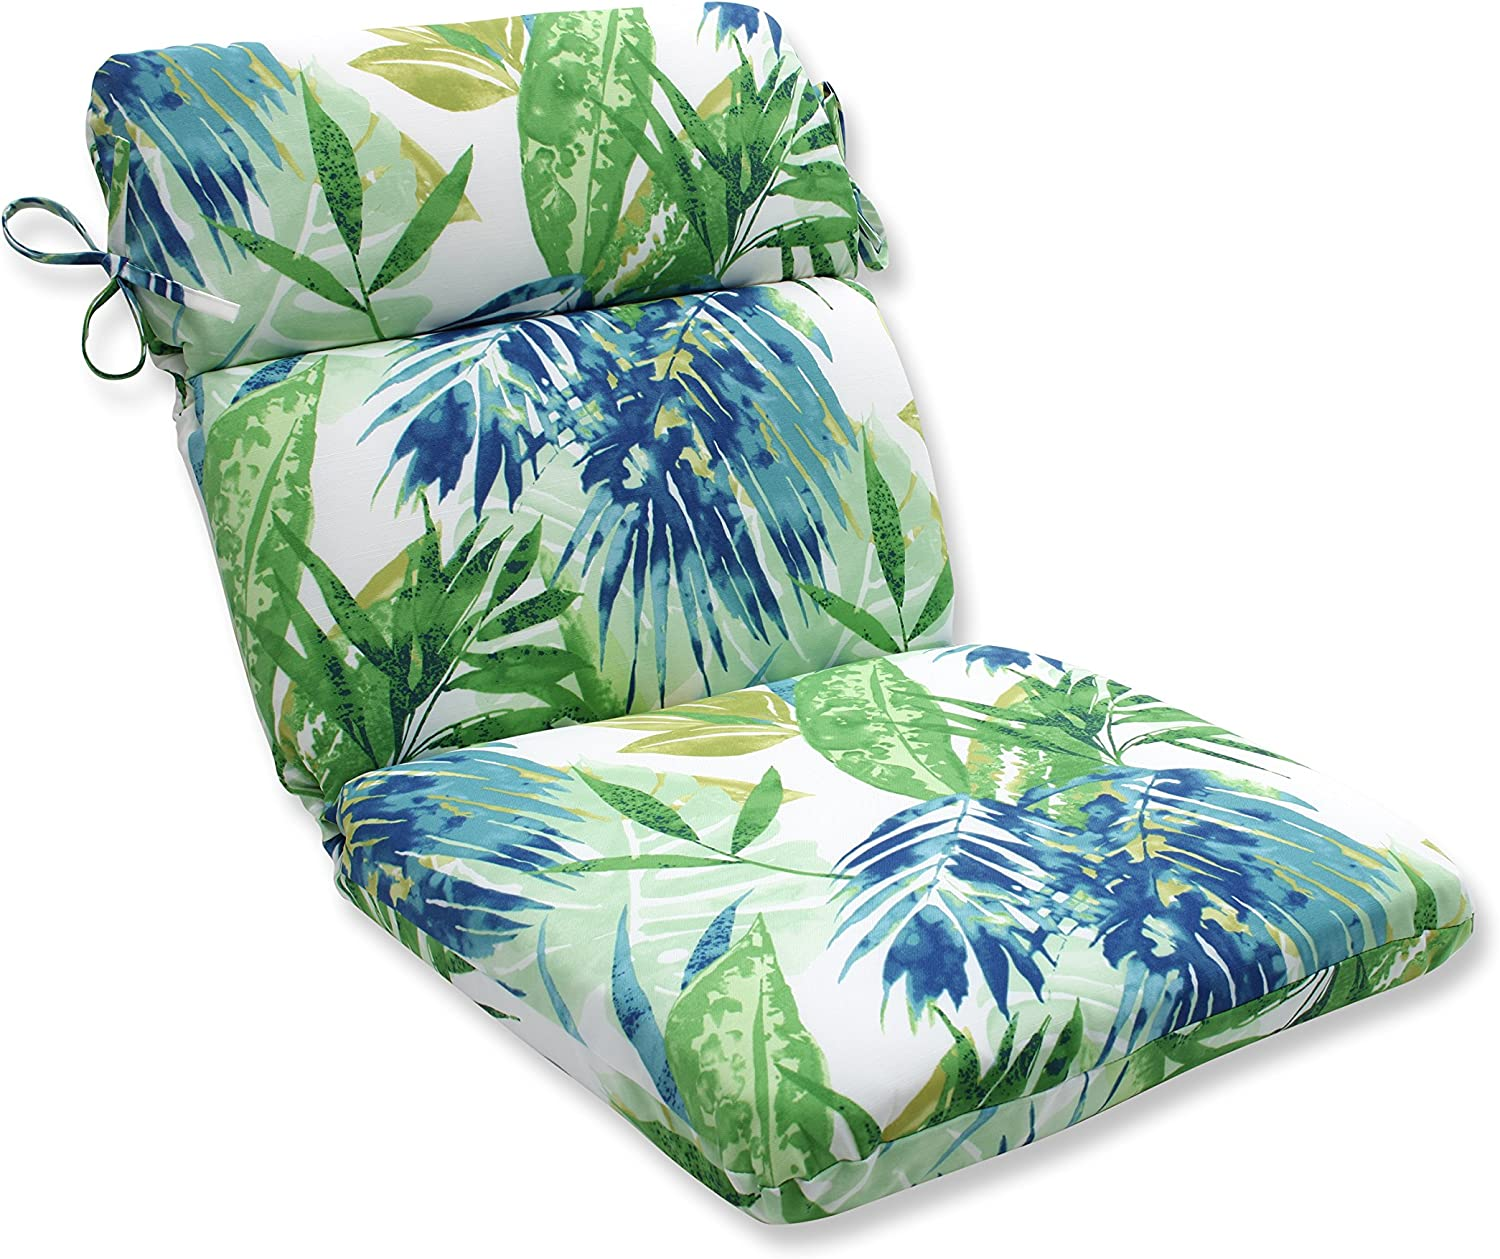 Pillow Perfect Outdoor/Indoor Soleil Rounded Corners Chair Cushion, Blue/Green